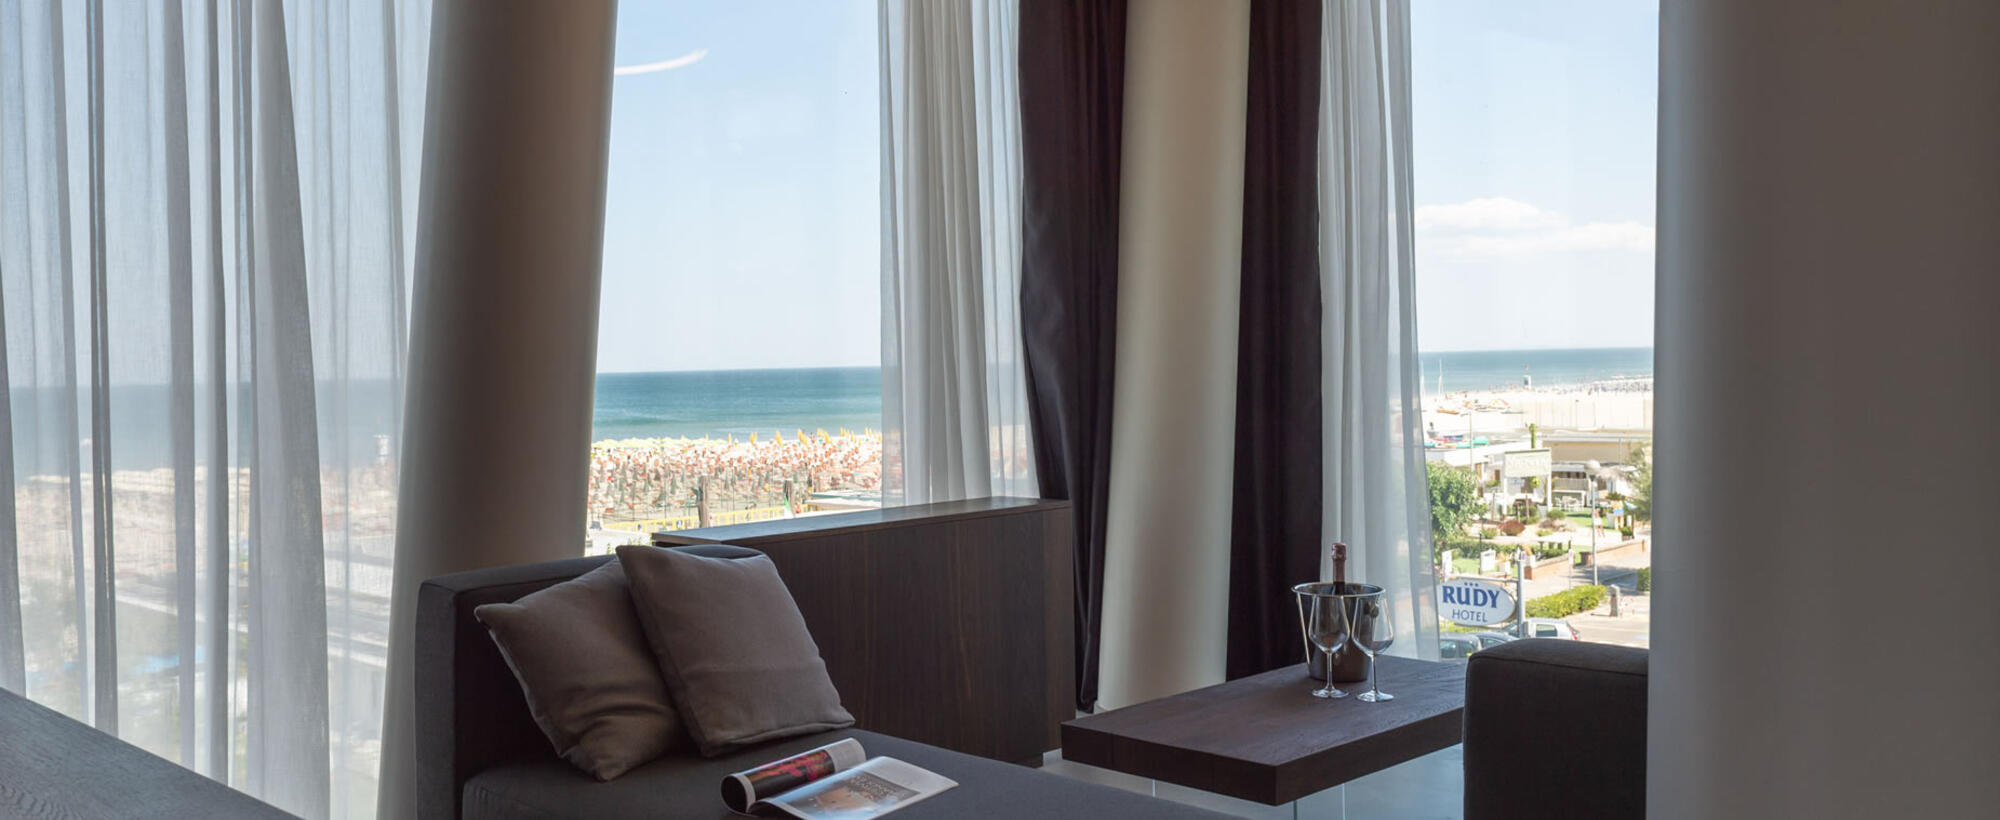 3 Star Hotel On Cervia S Seafront A Holiday Of Comfort And